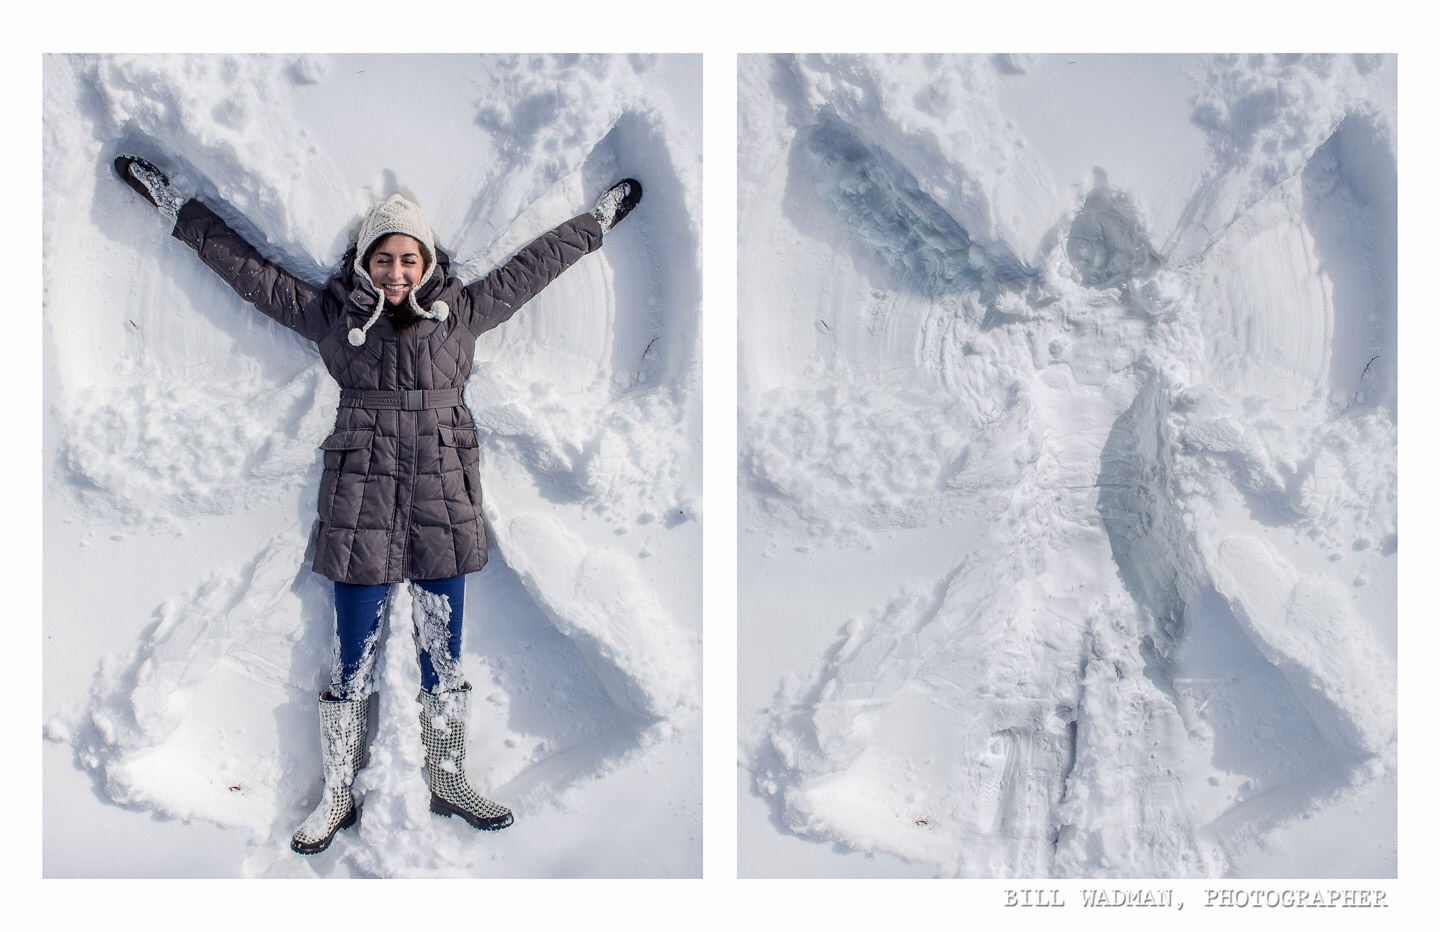 4.) snow angels are fun! And cool to look at when your done!